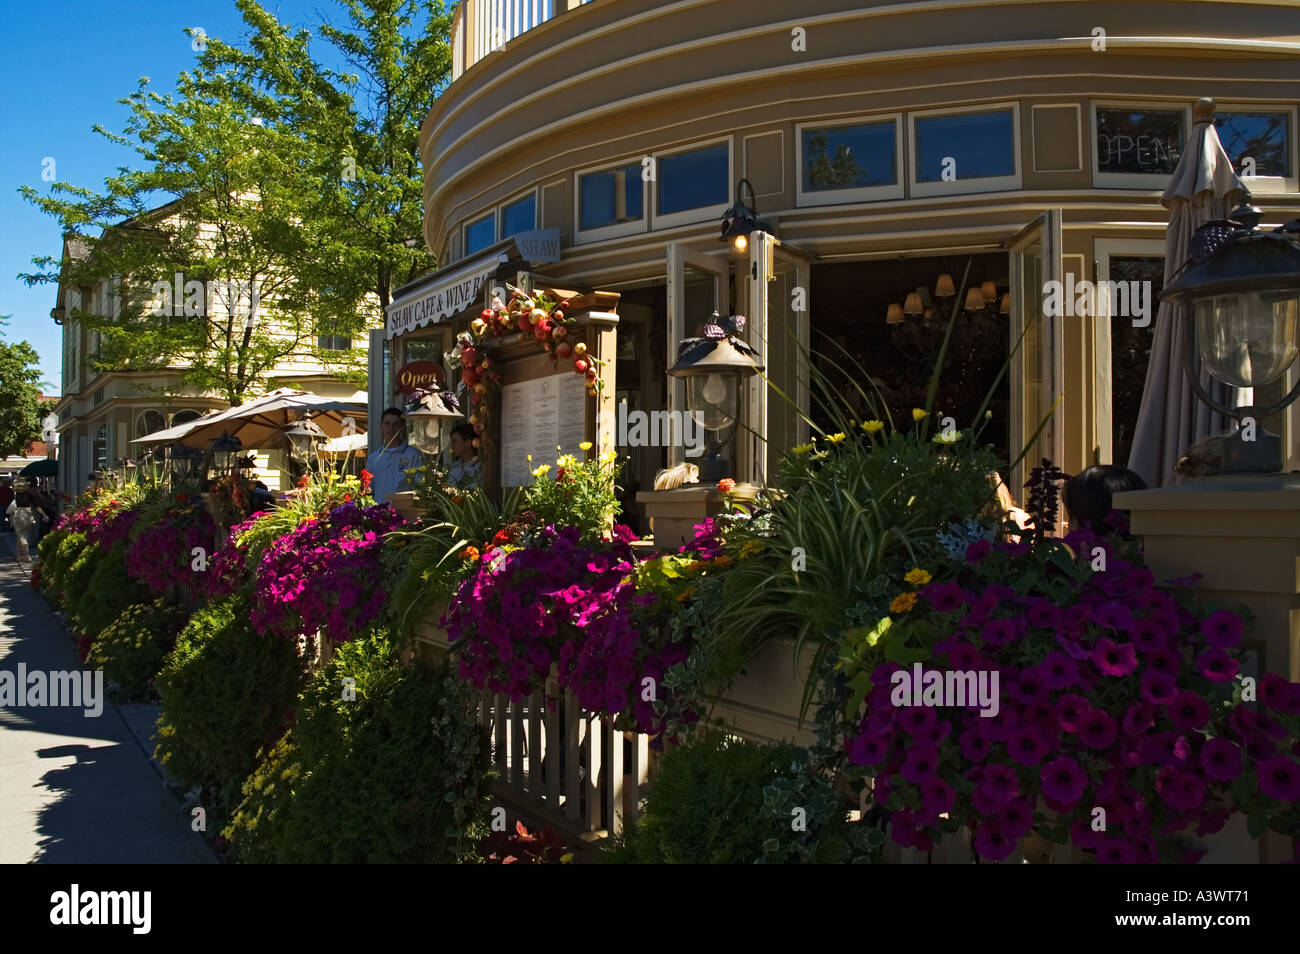 Canada Ontario Niagara on the Lake Shaw Cafe and Wine Bar exterior patio - Stock Image